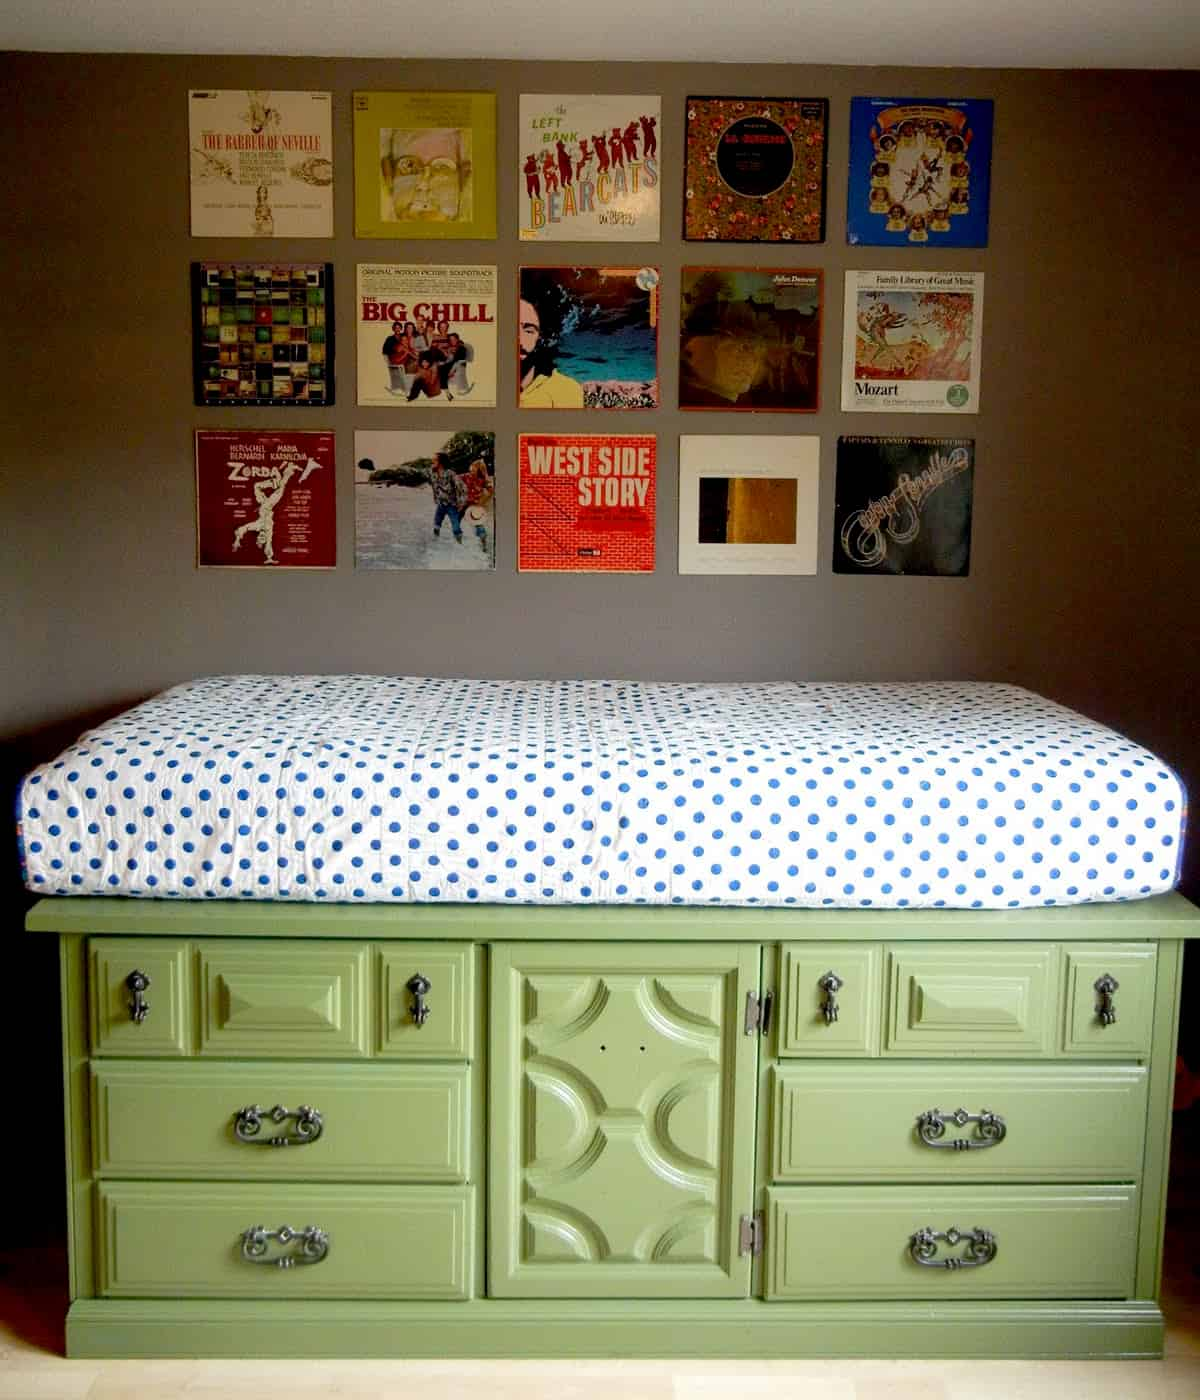 How To Make Beds With Storage